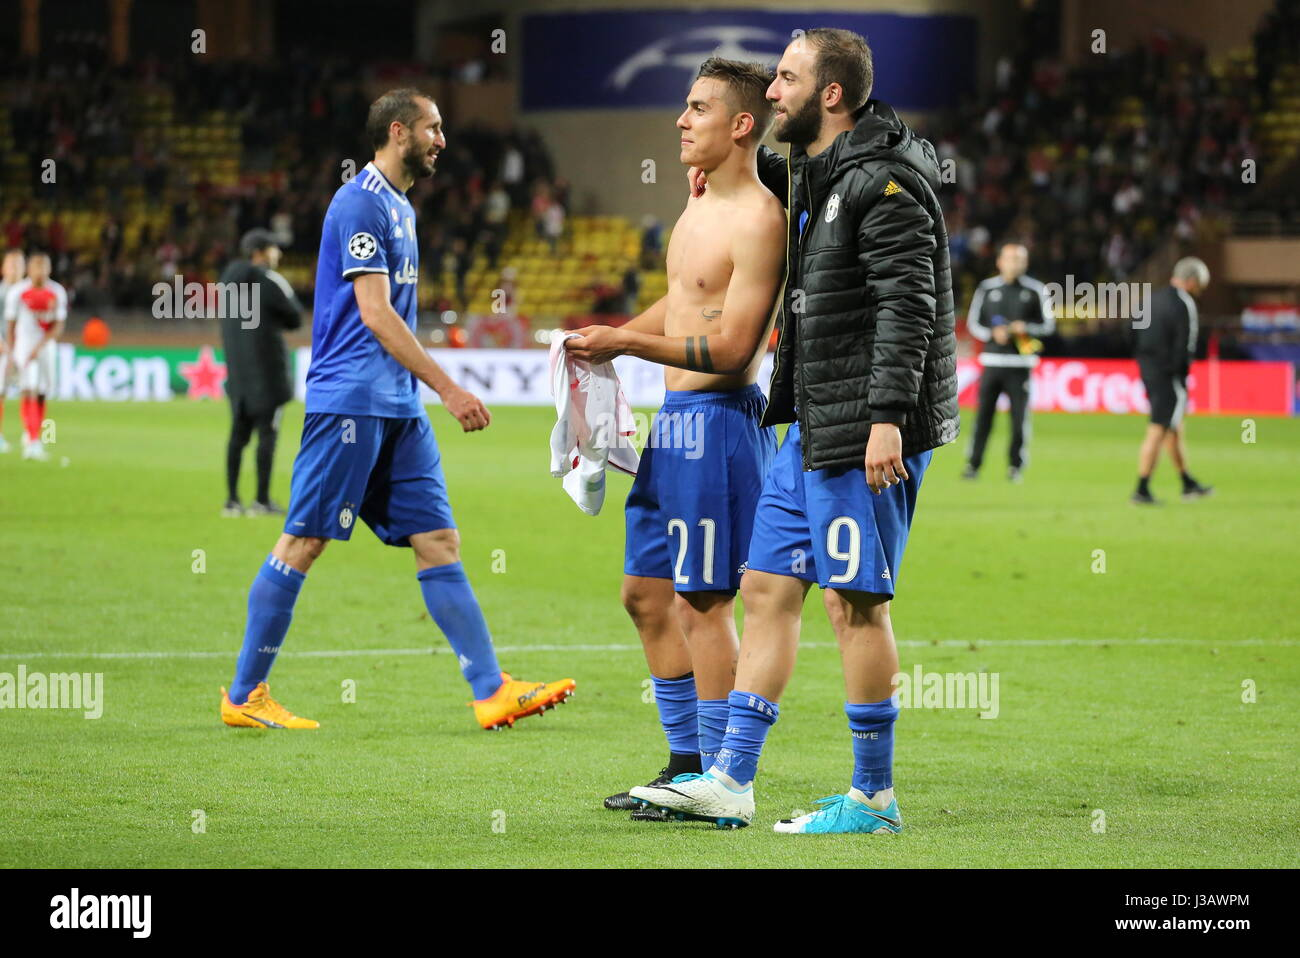 Monaco 03rd May 2017 Paulo Dybala Juventus FC and Gonzalo